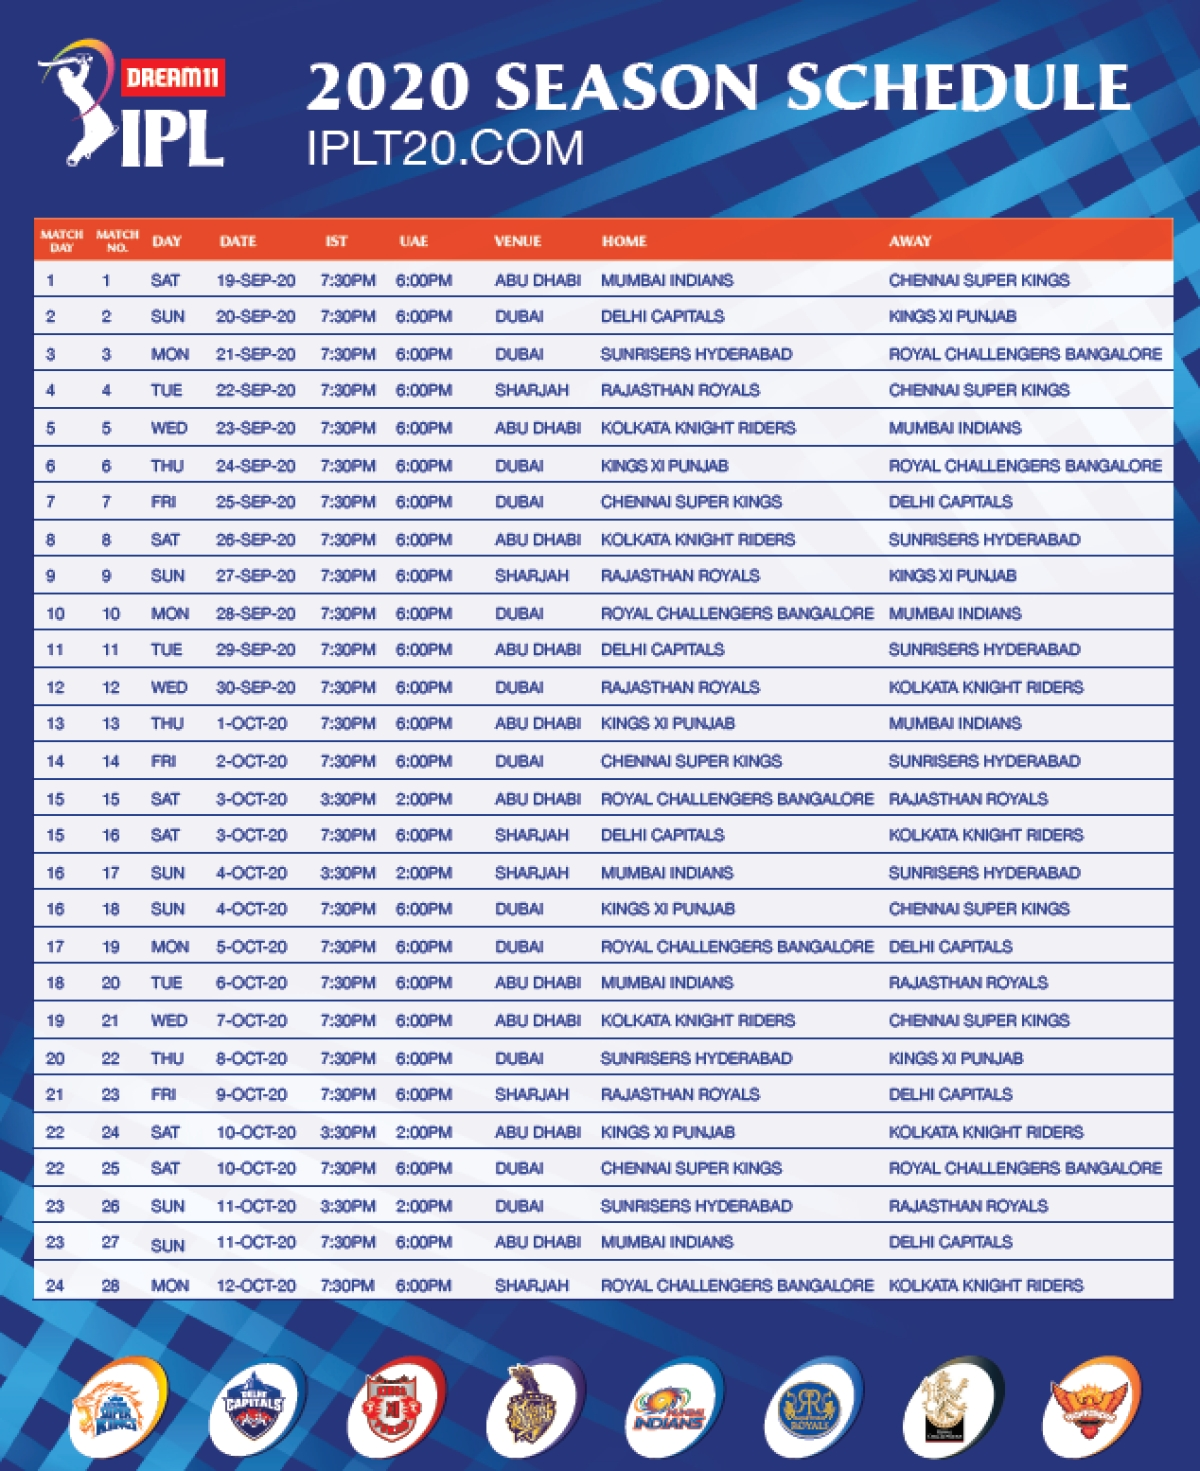 IPL 2020: MI to take on CSK; check out full schedule here